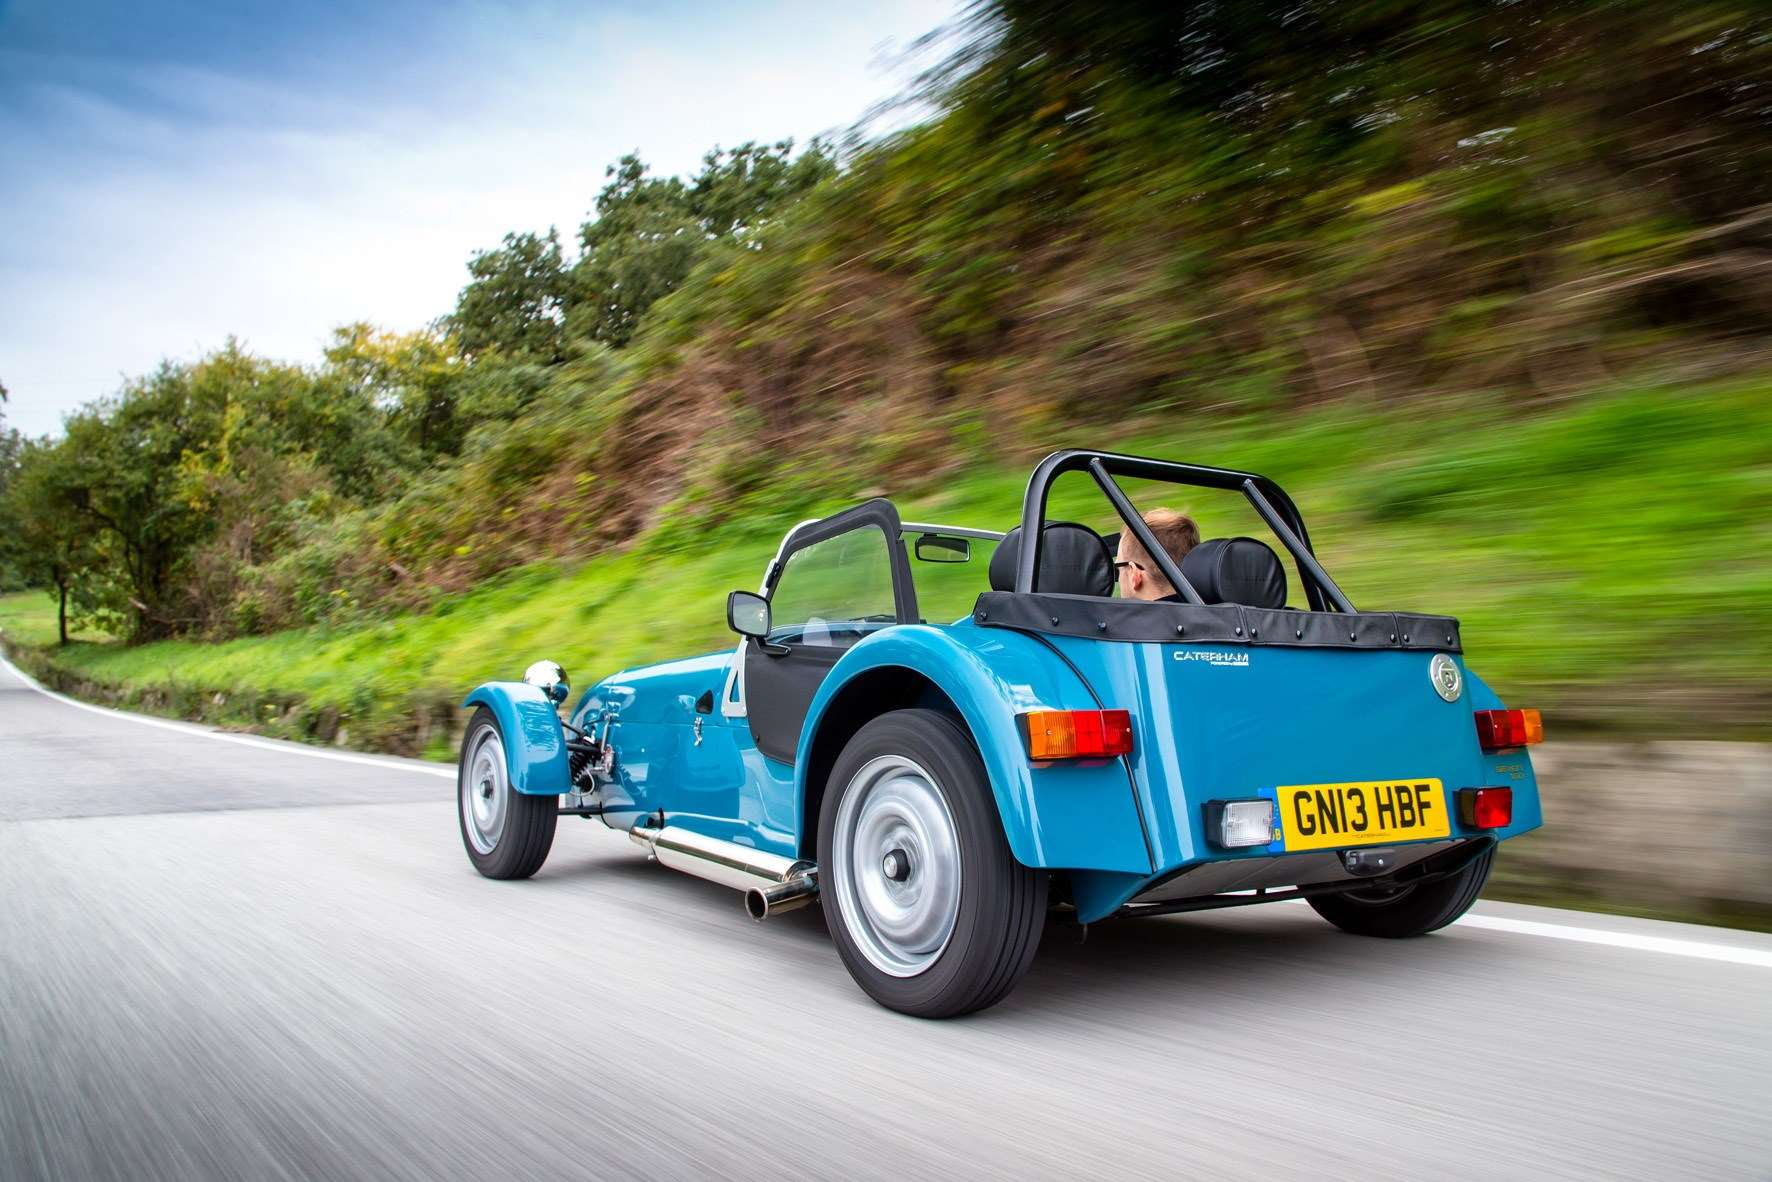 The Caterham Seven 160 in 2014